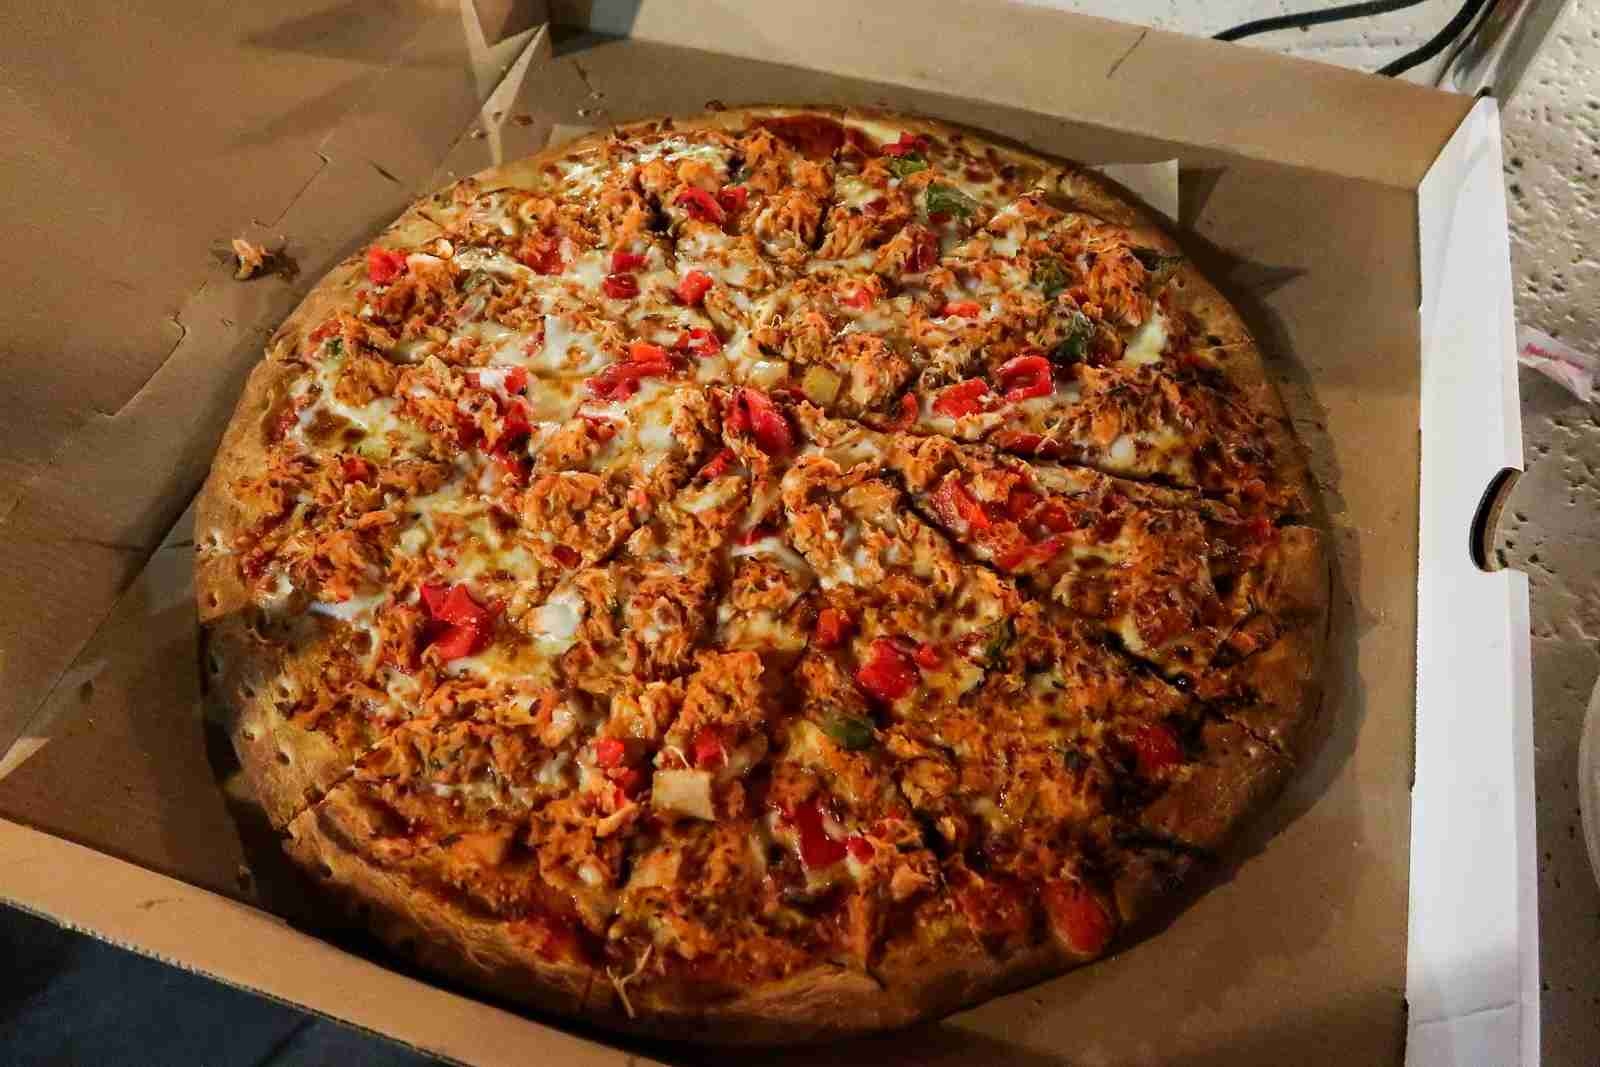 This is what a $41 pizza looks like.